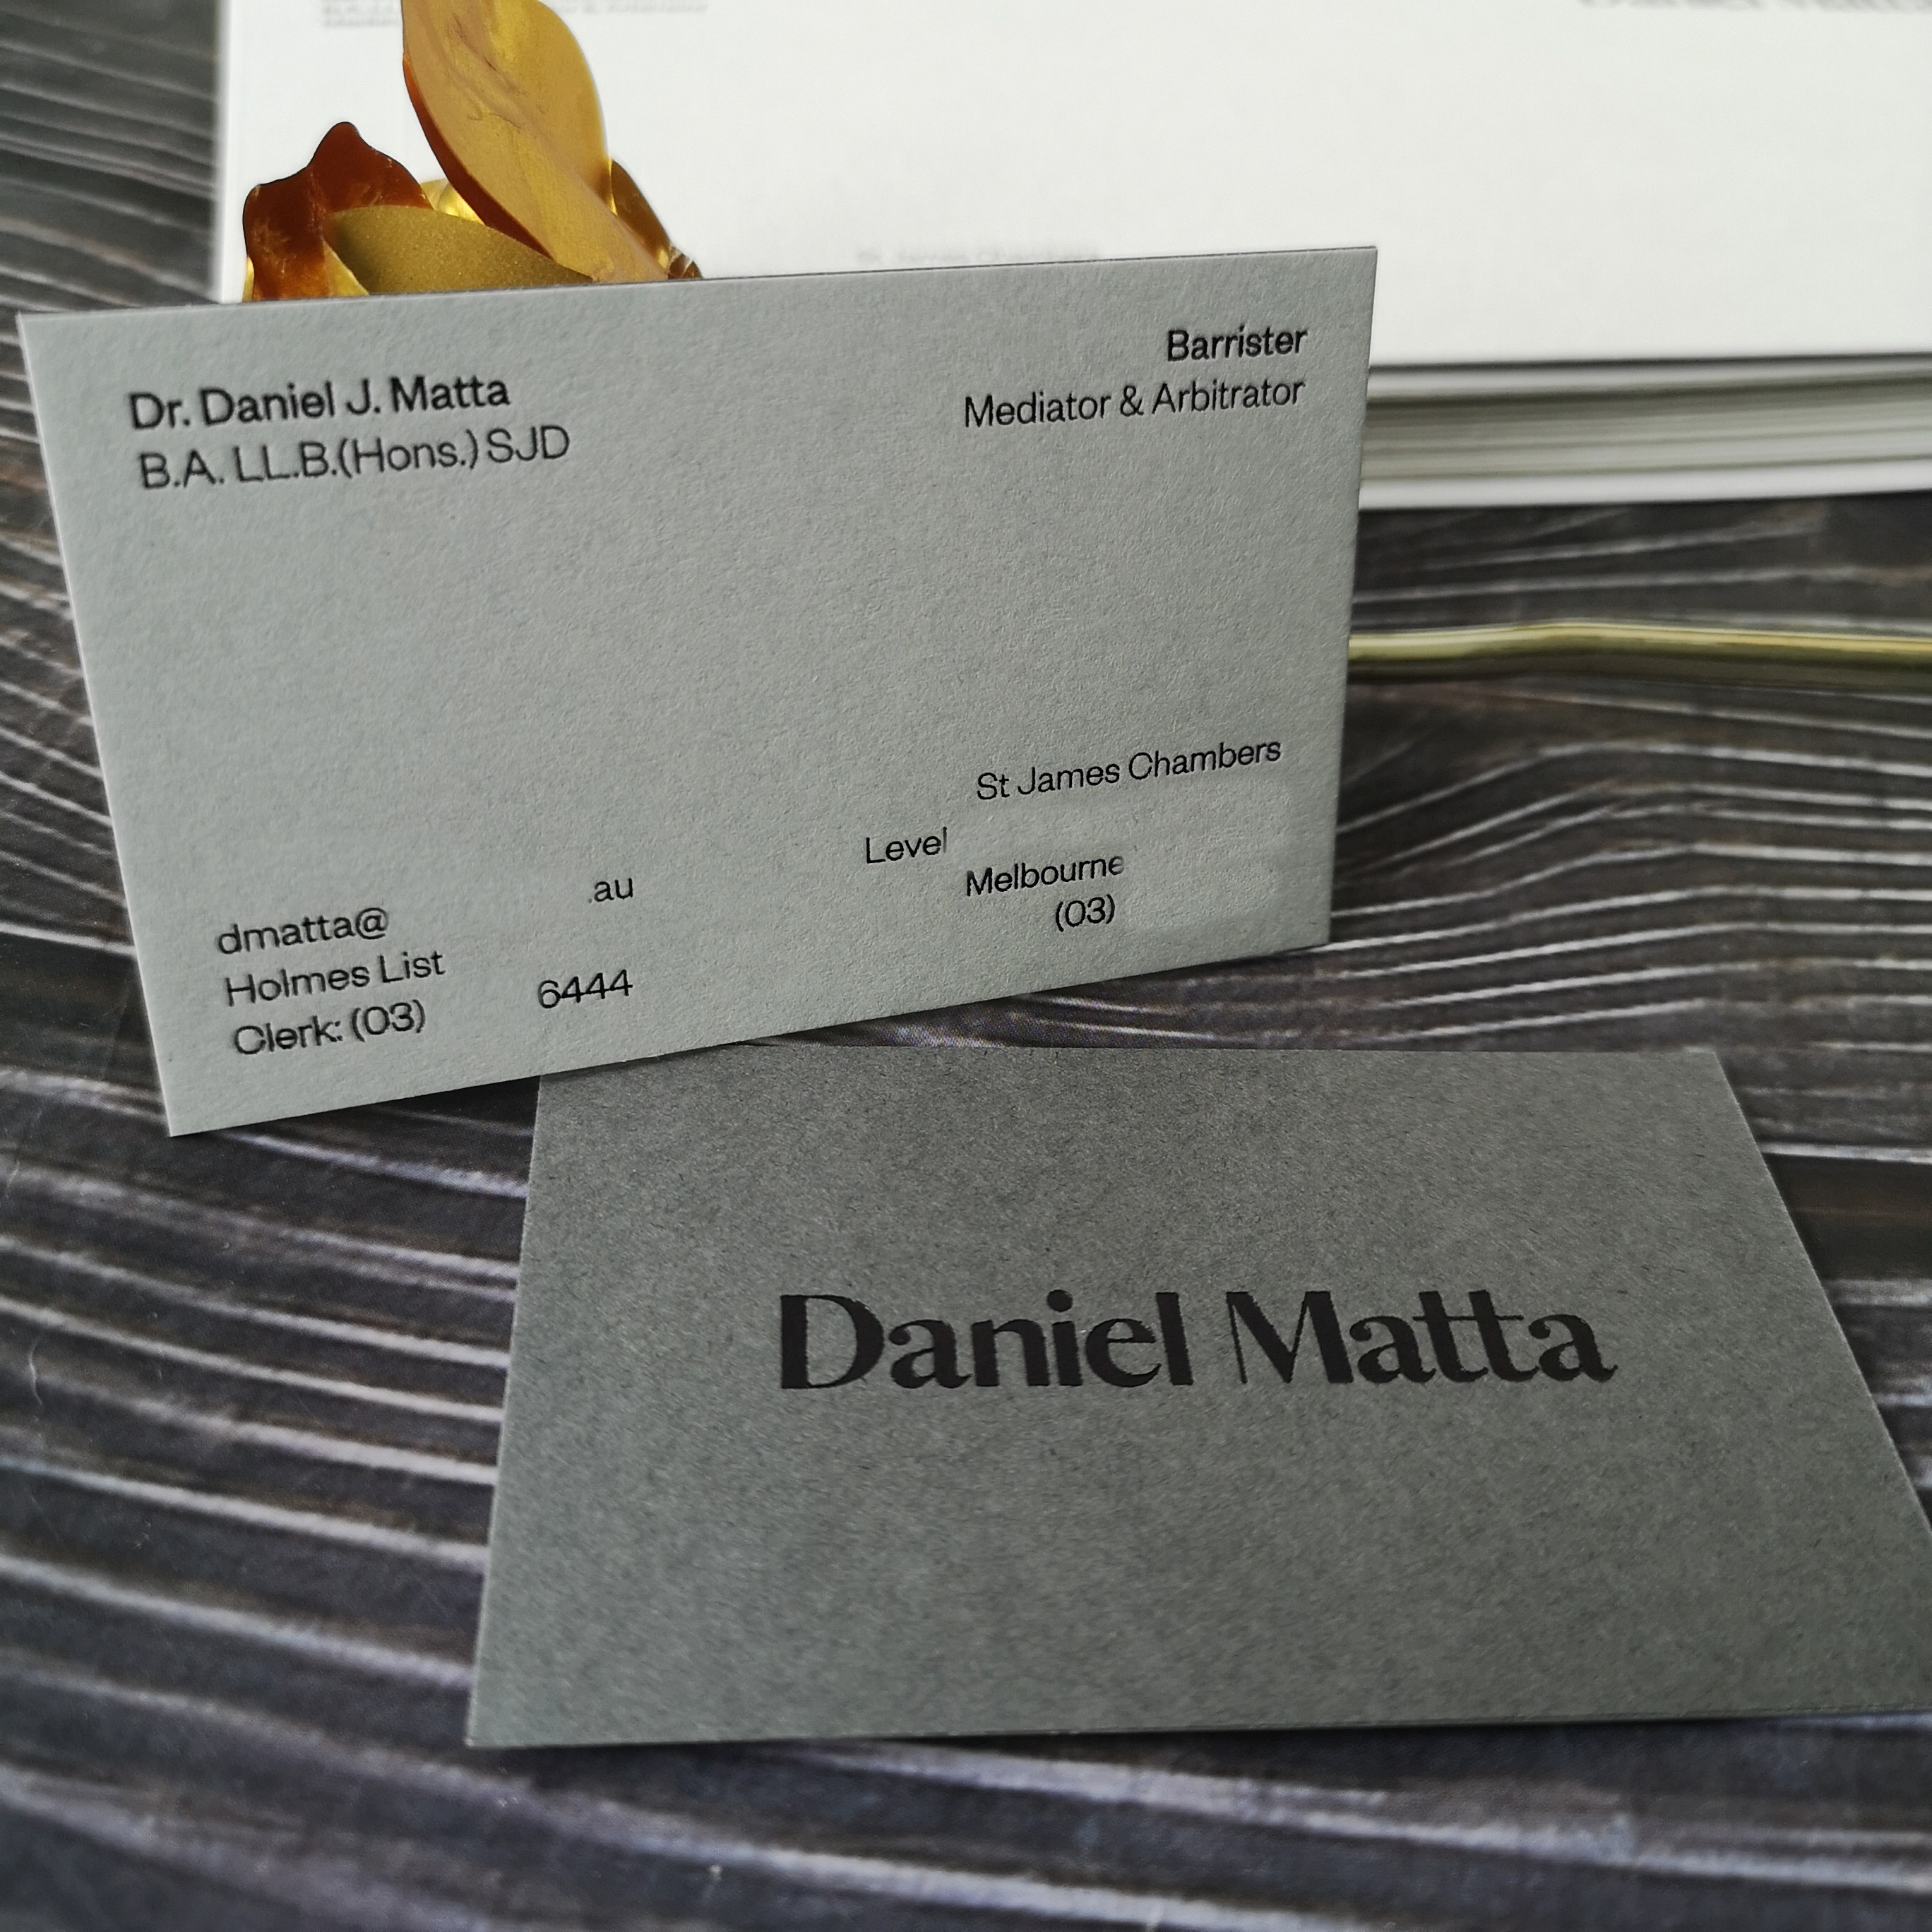 600g cotton paper business card, concave and convex business card,